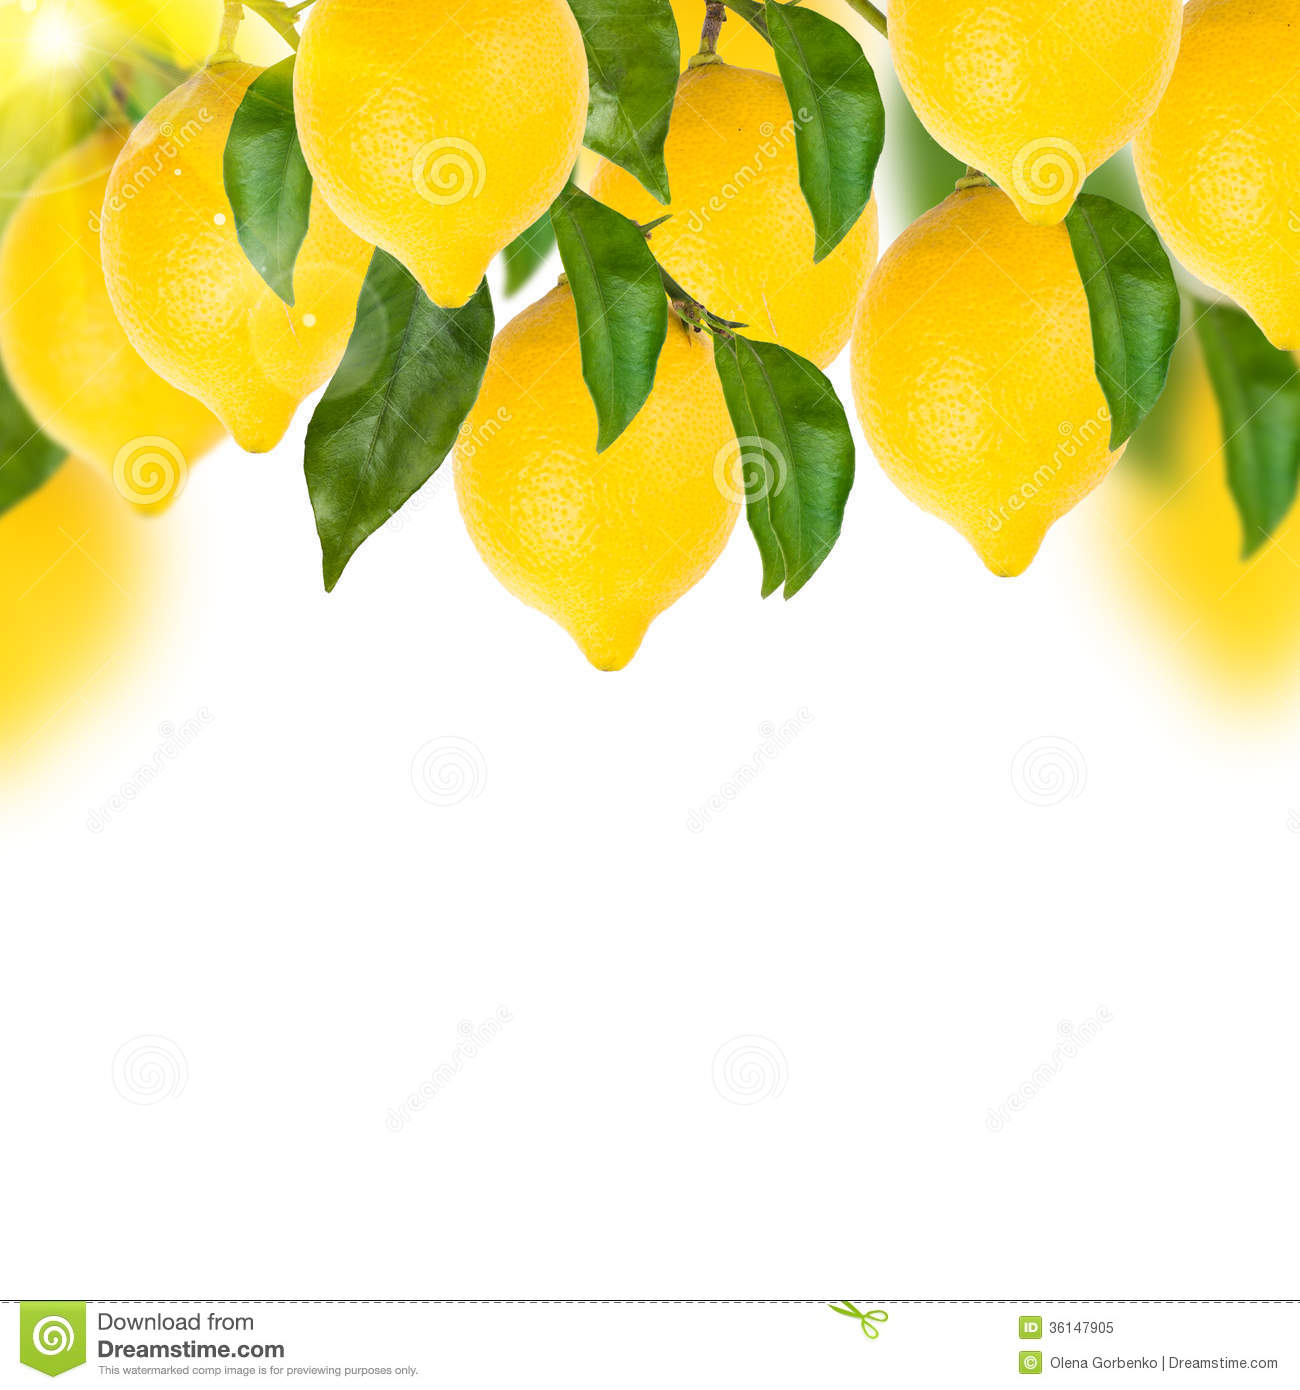 Different herbs royalty free stock image image 16265346 - Lemon Tree On A White Royalty Free Stock Photo